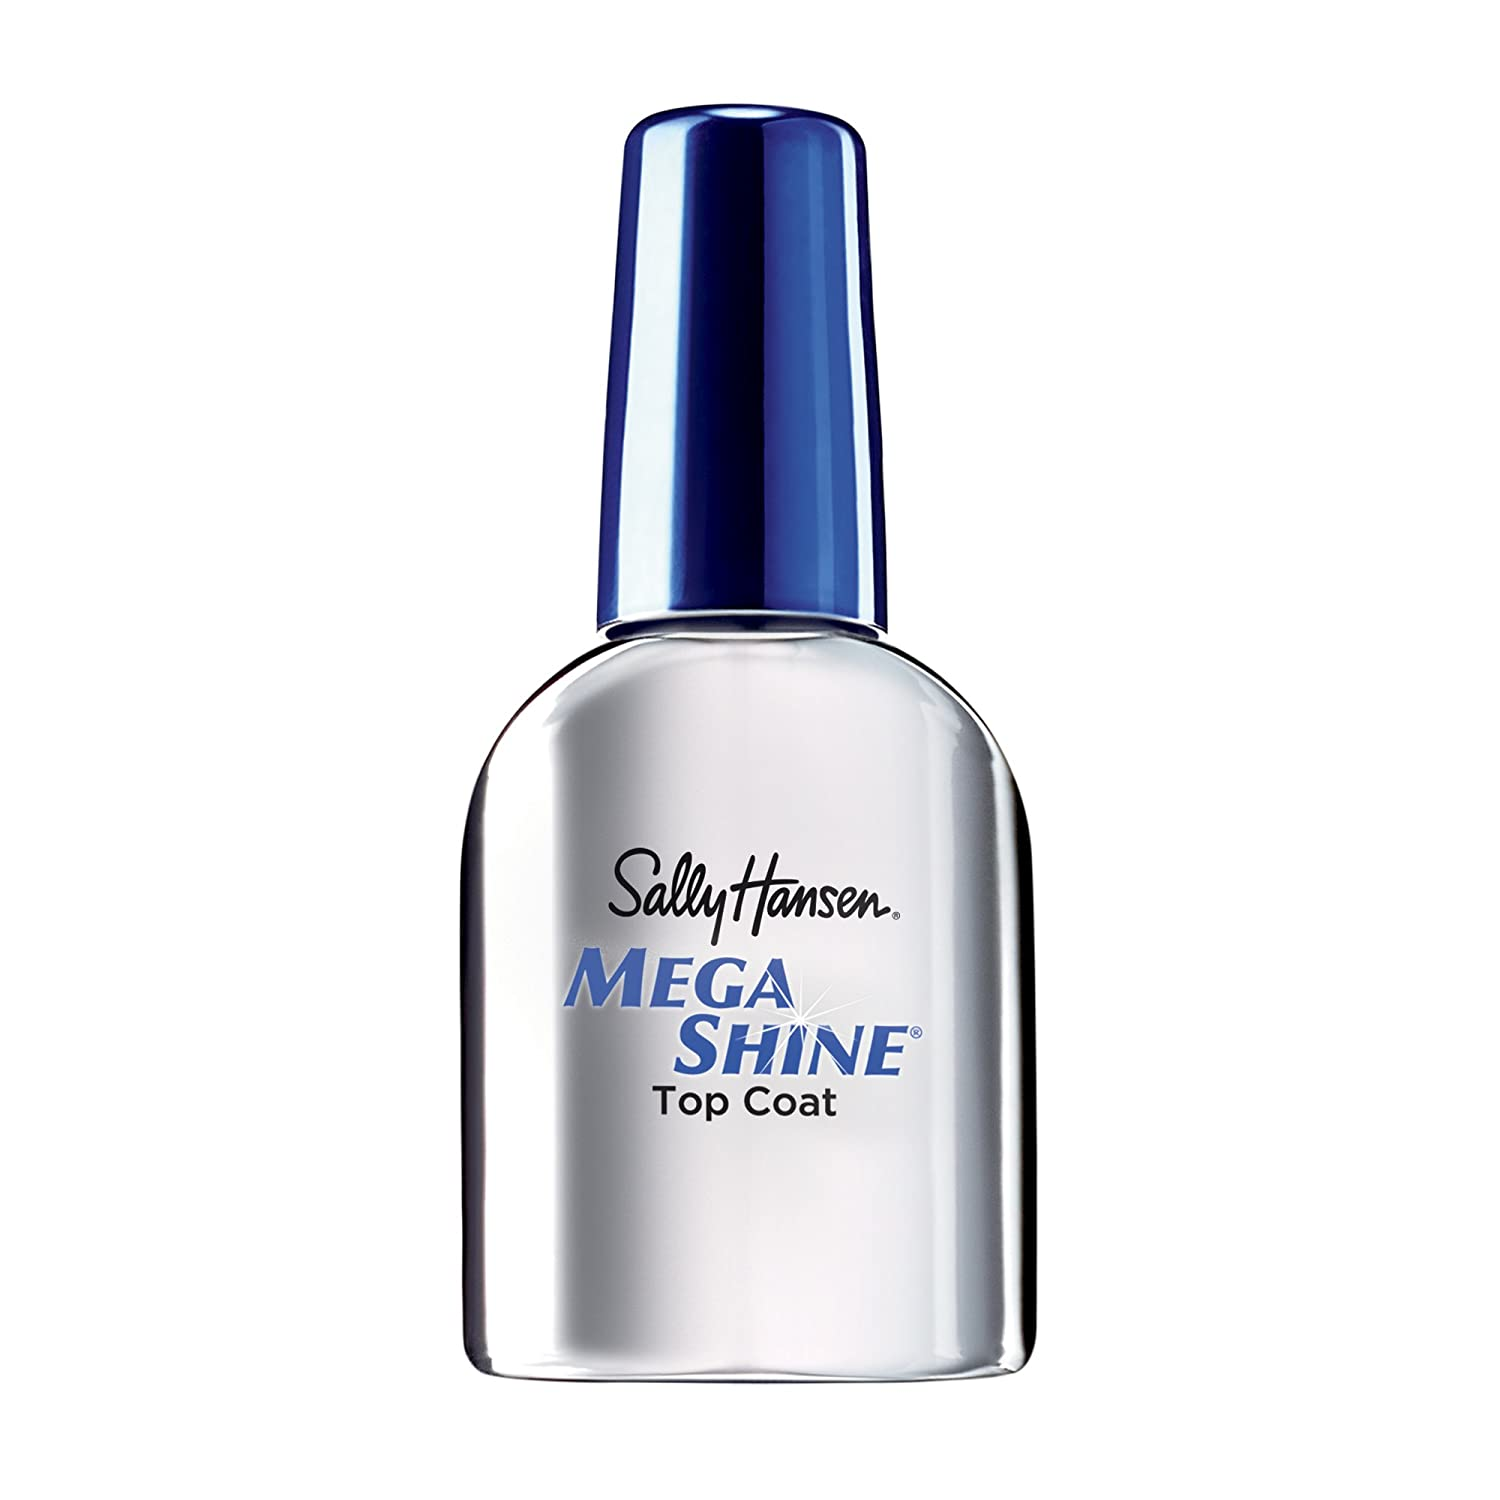 Sally Hansen Double Duty Strengthening Base and Top Coat, 13.3 ml, Packaging May Vary Coty 30003290000